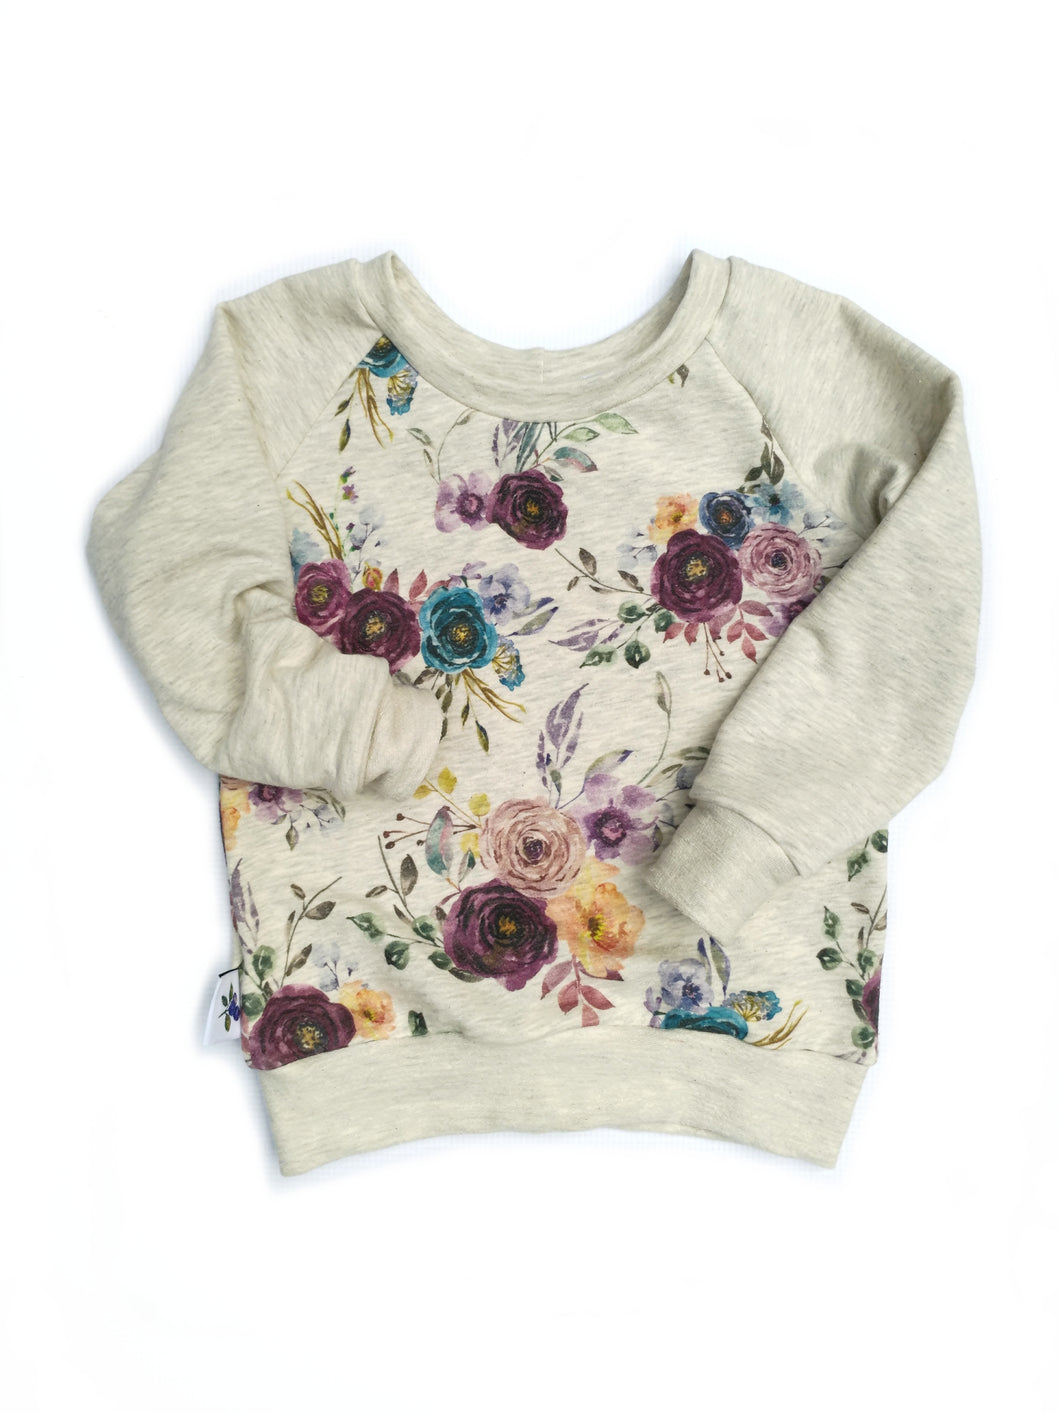 Camping Sweatshirt - Flowers, sizes 0/3 months to 5T/6